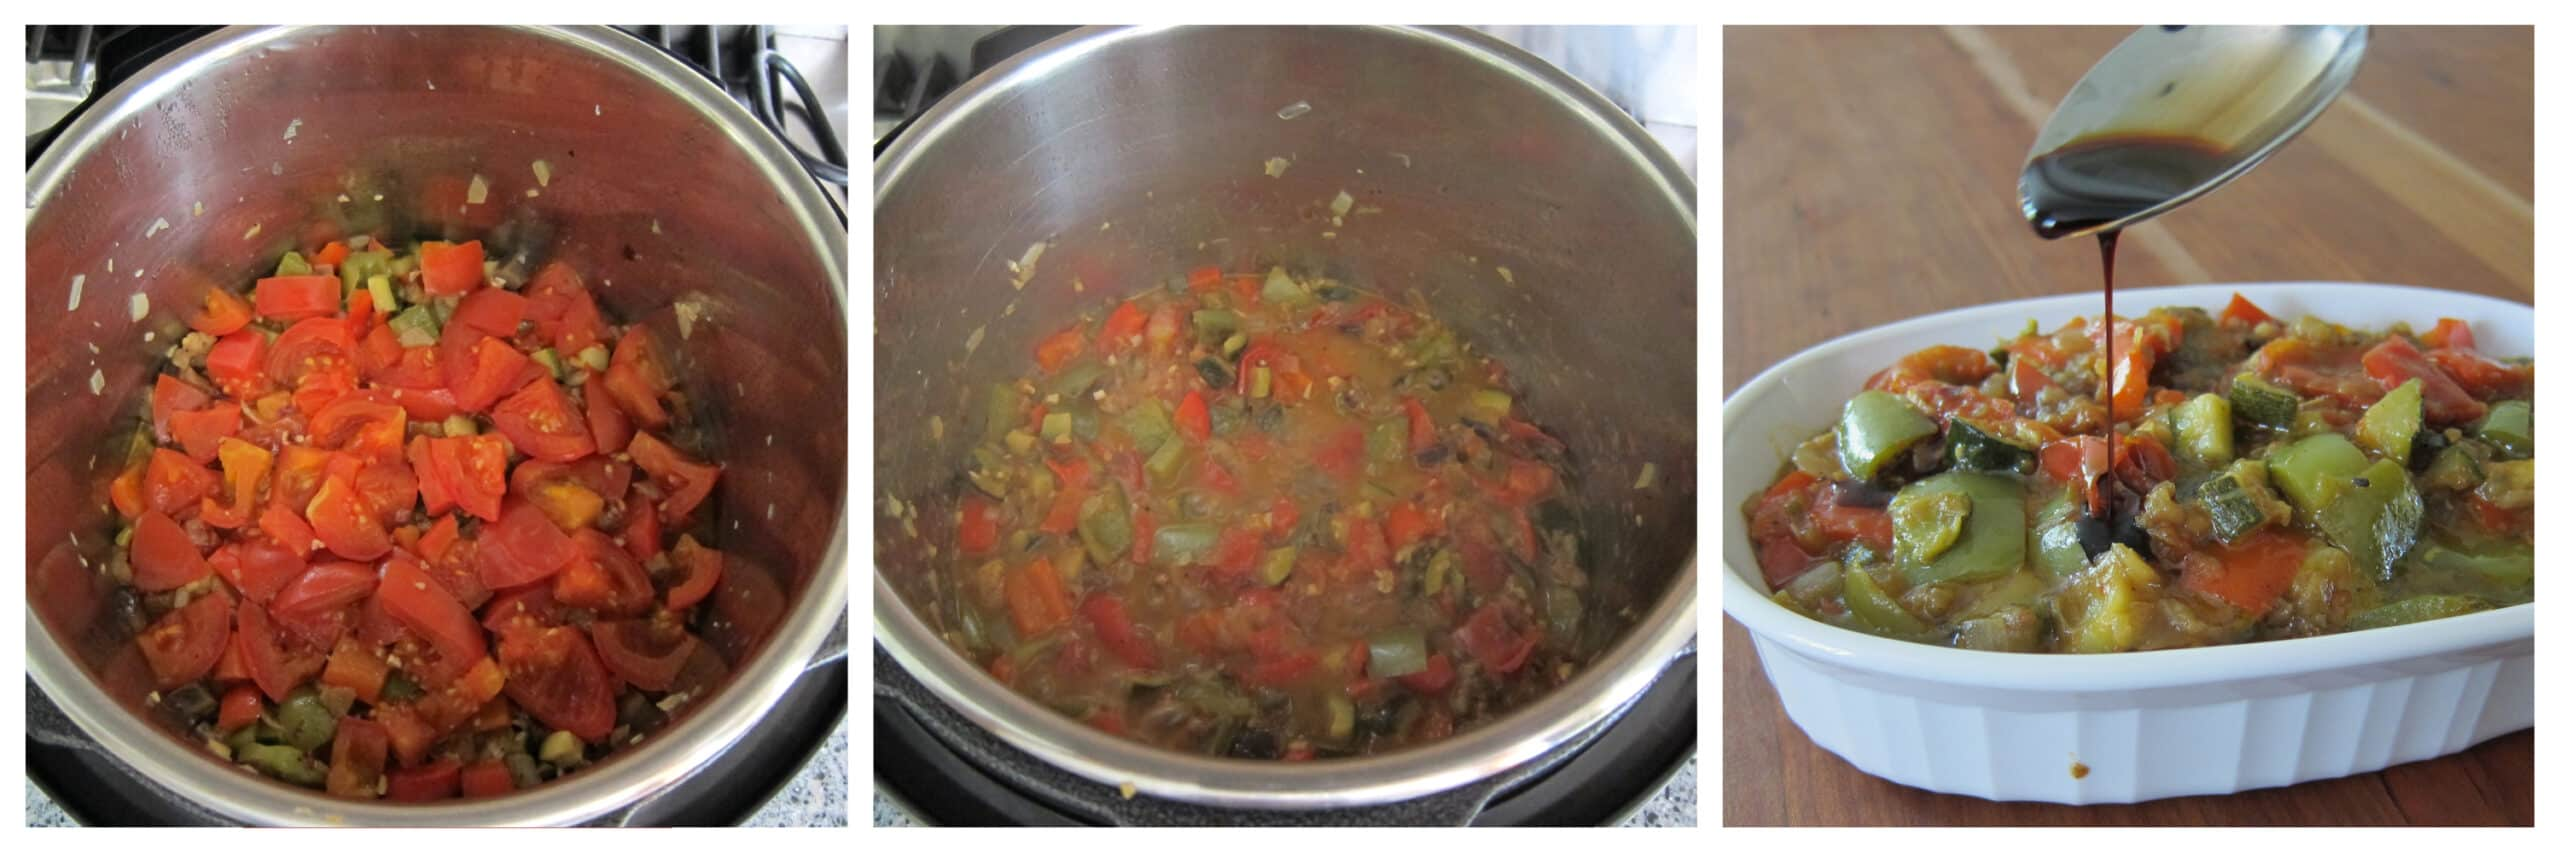 Instant Pot Ratatouille Instructions collage - vegetables cooked, stirred, drizzle balsamic vinegar